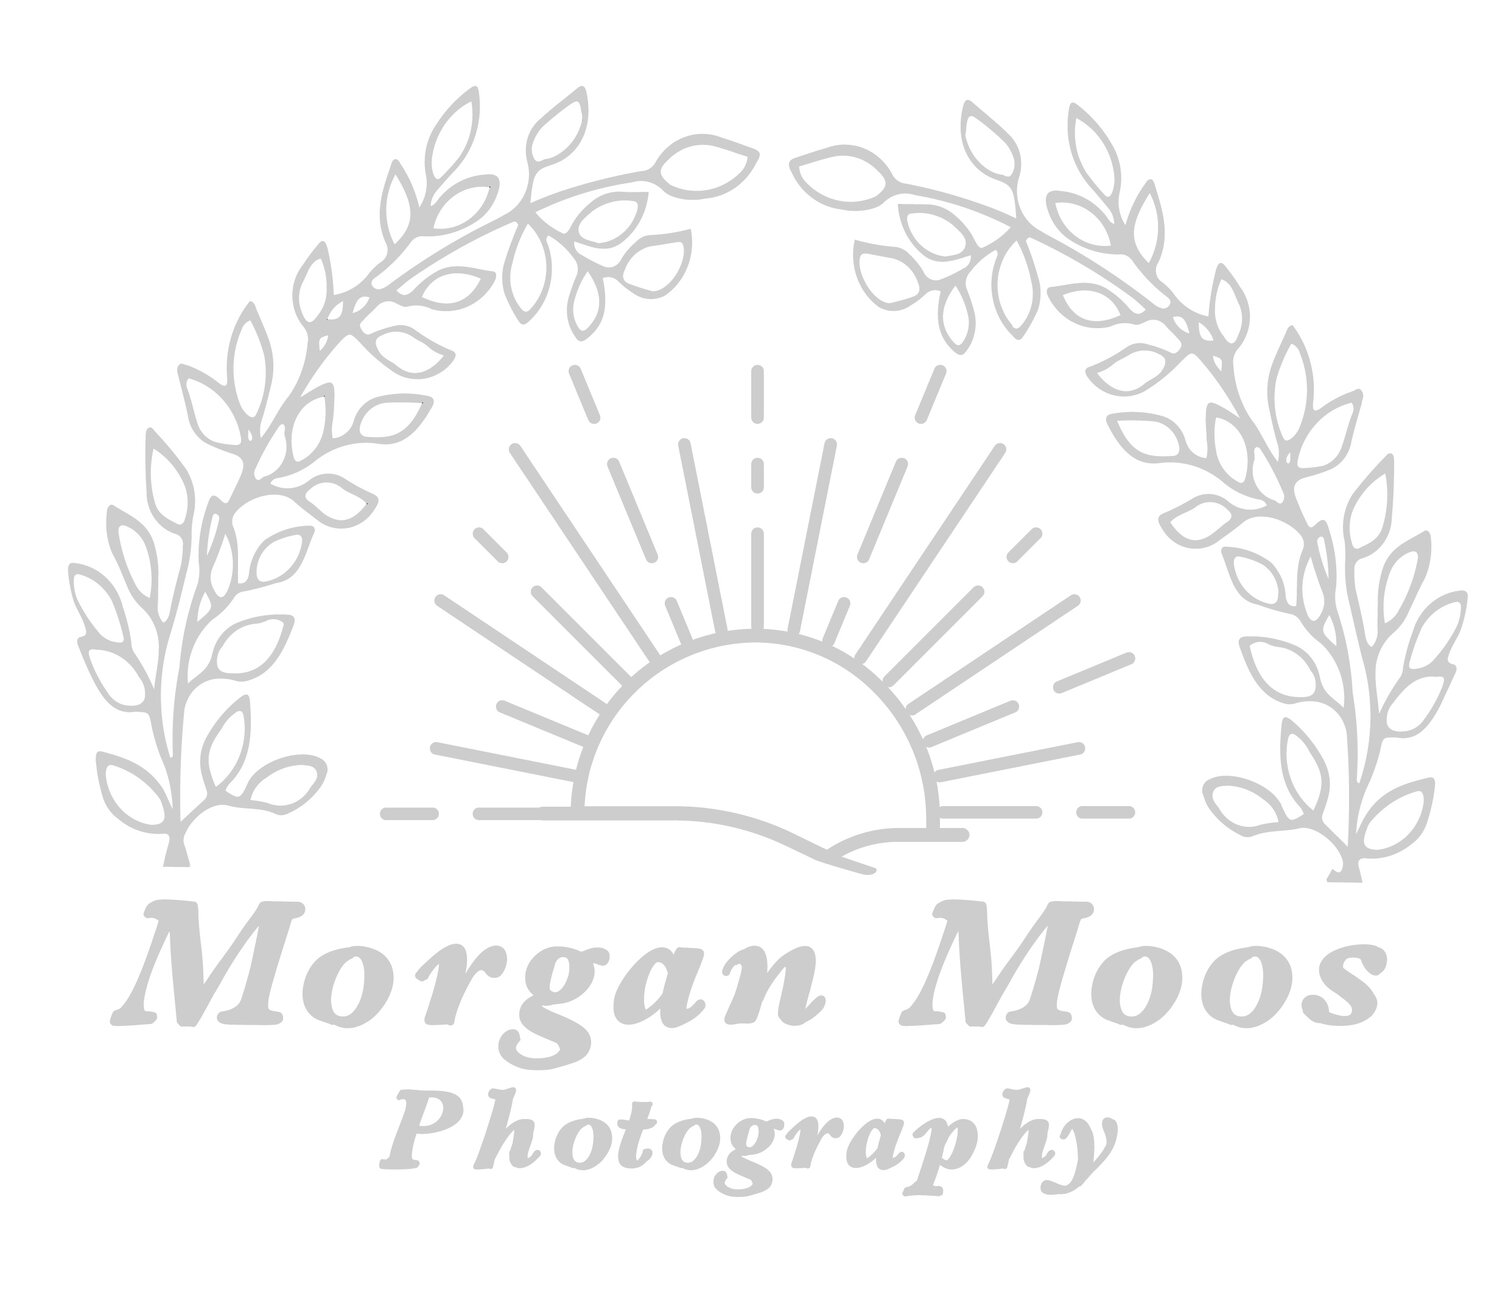 Morgan Moos Photography